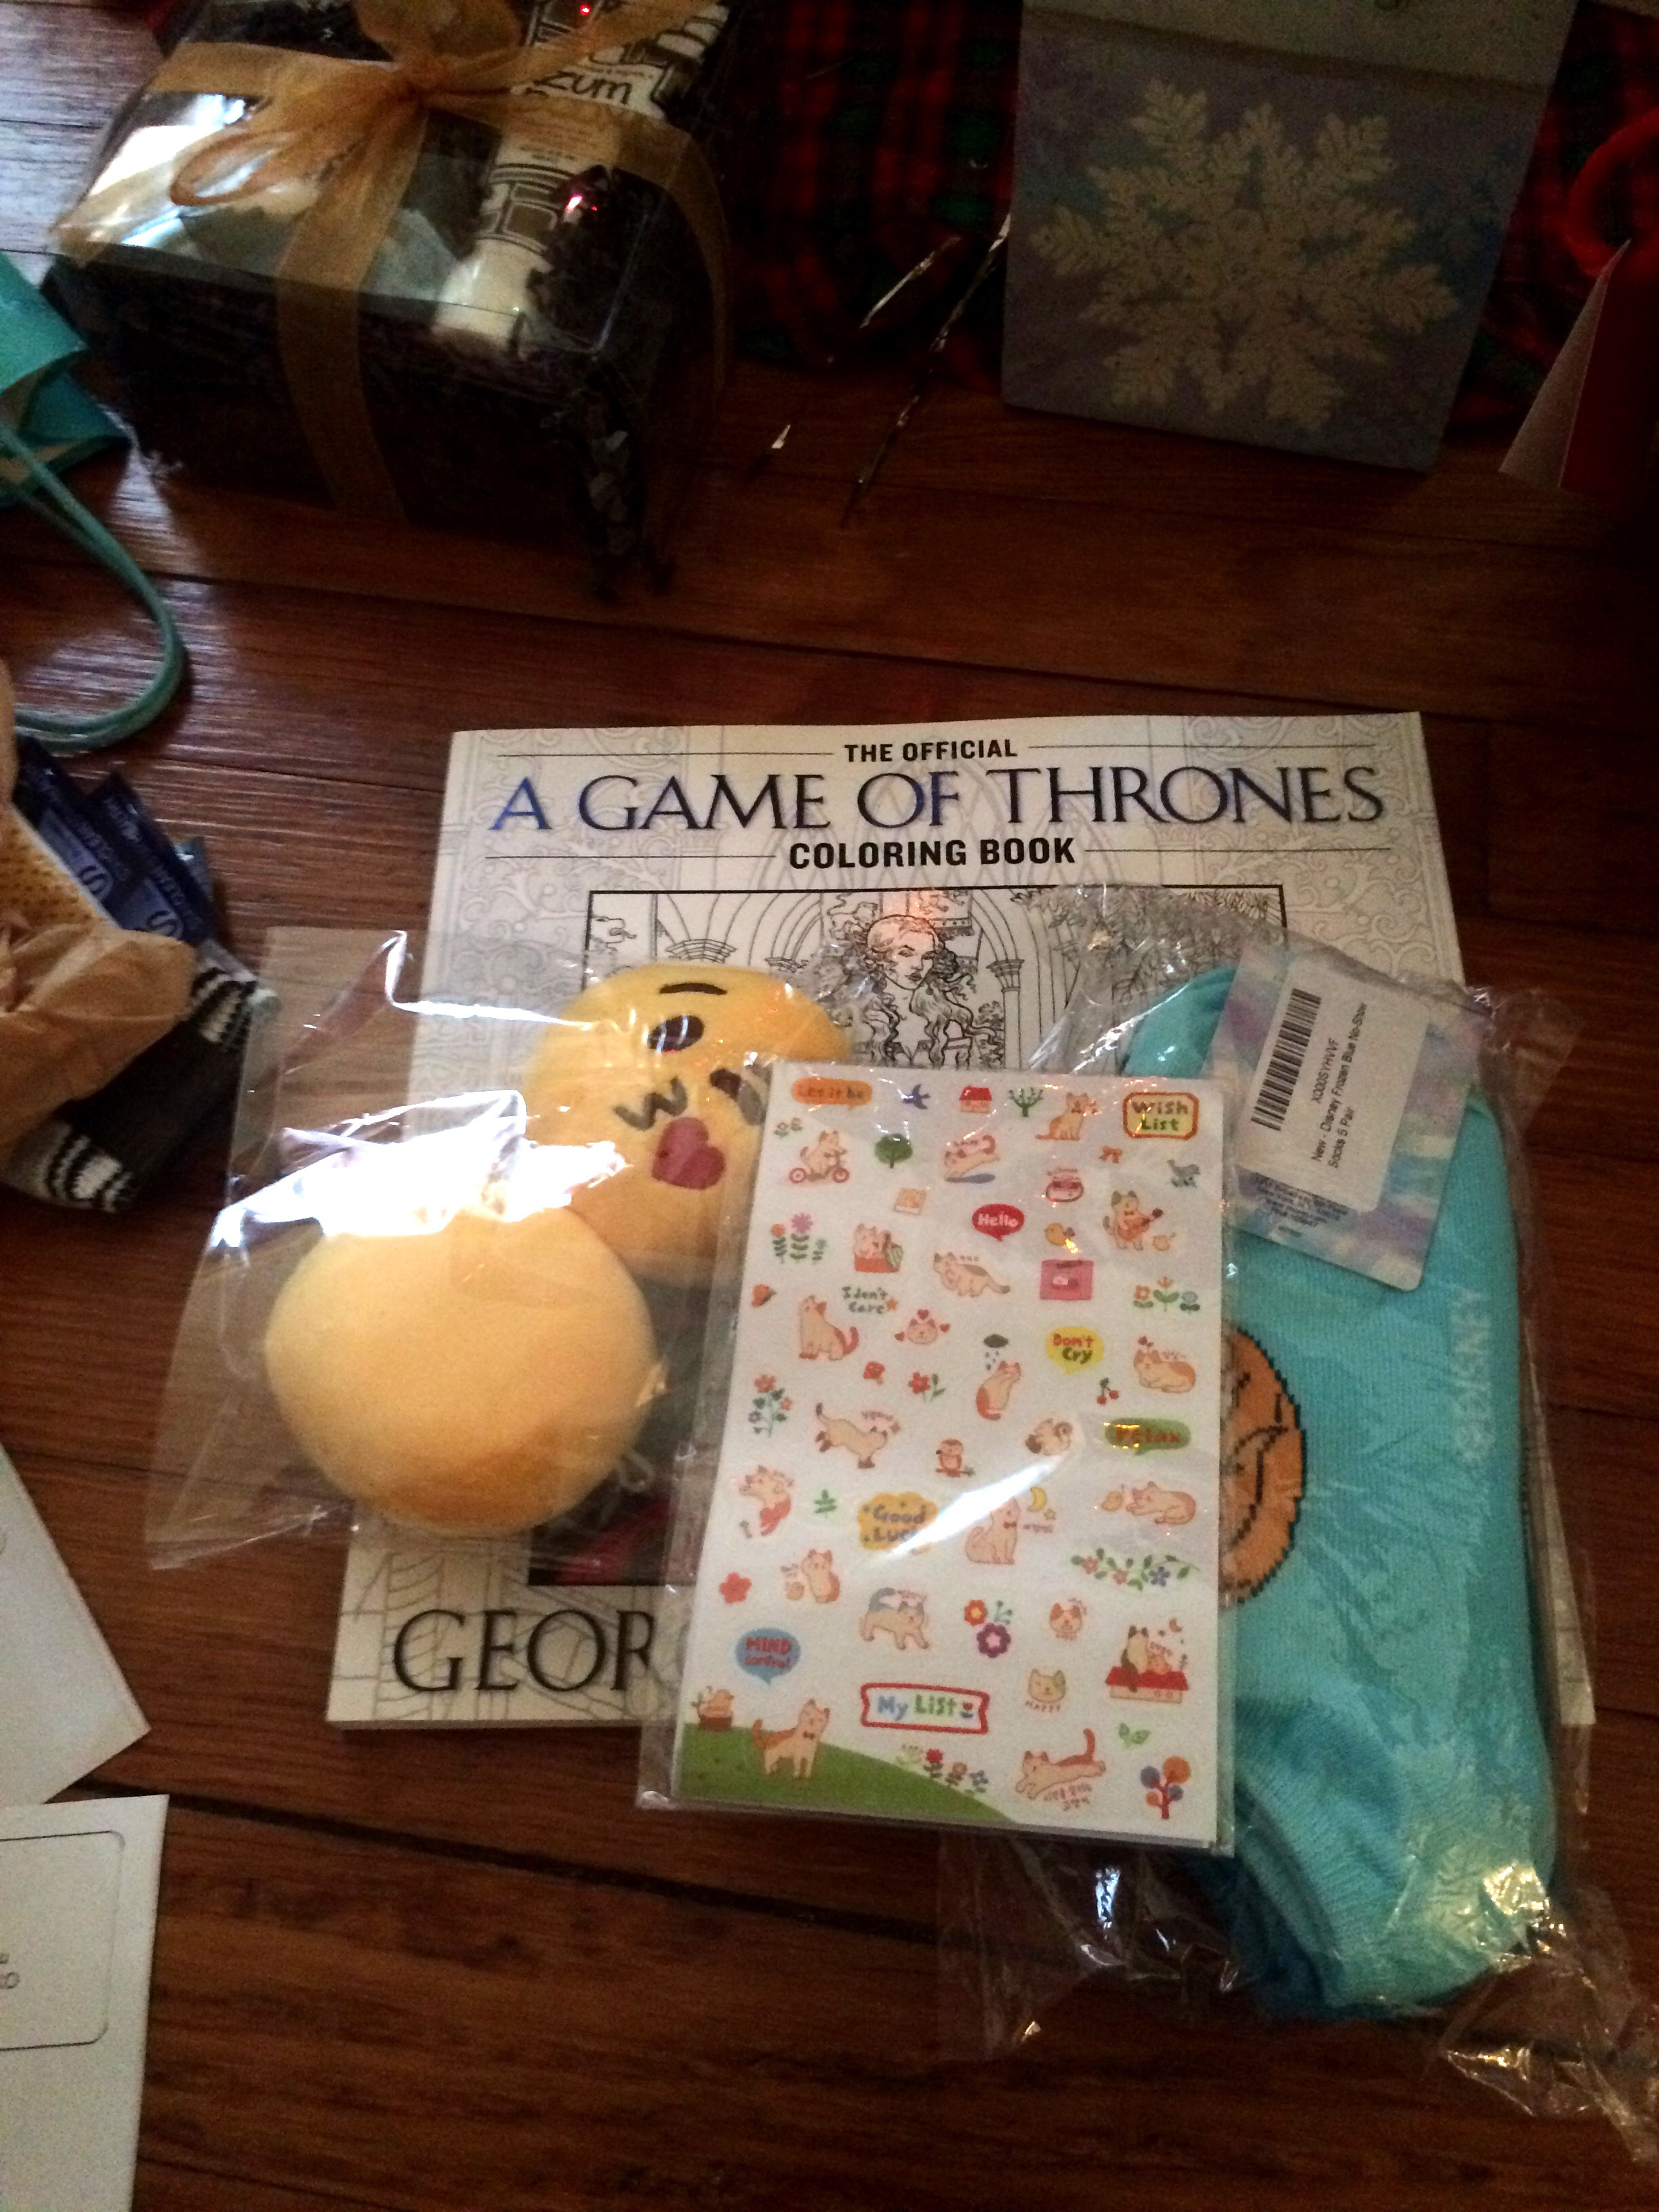 """My bffl sent me gifts for my """"inner child,"""" haha. Cat stickers, Frozen socks, GoT coloring book, and emoji keychains ftw!"""